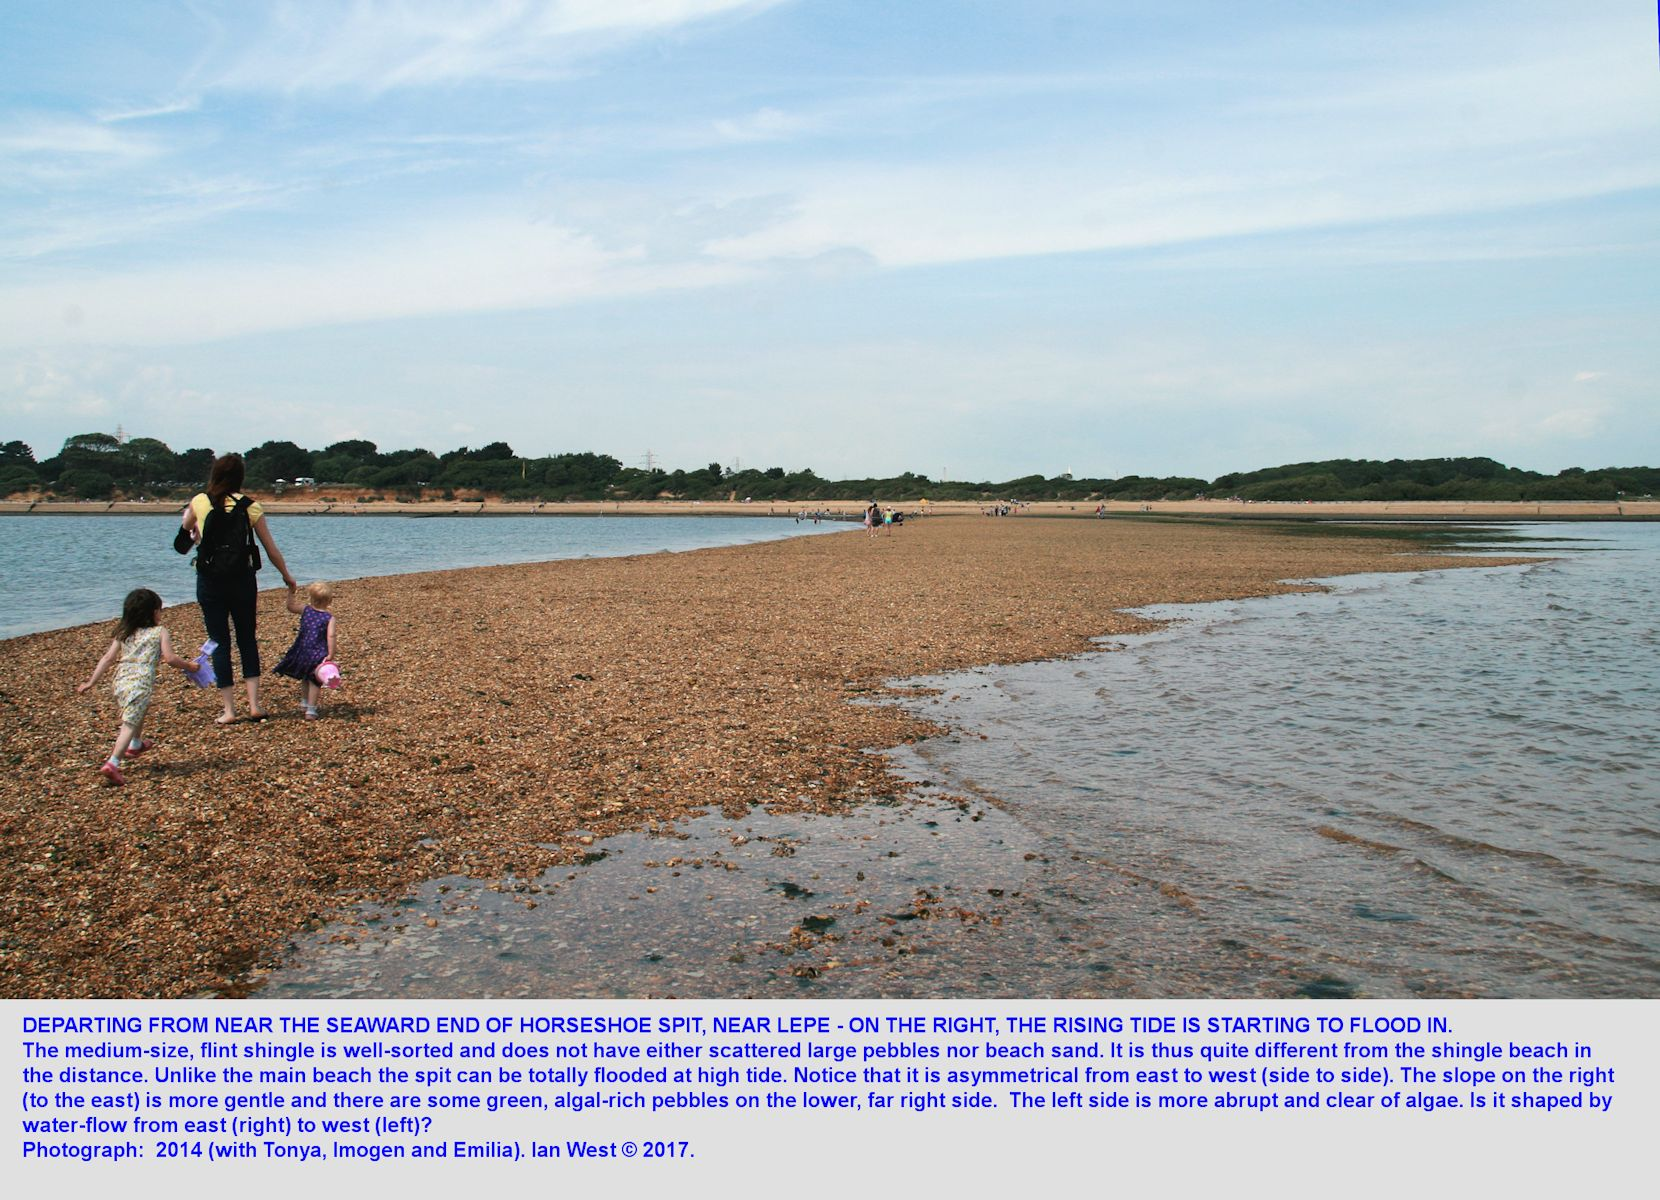 Departing from the end of Horseshoe Spit, a transverse spit or bar in the West Solent estuary, near Lepe Beach, Hampshire